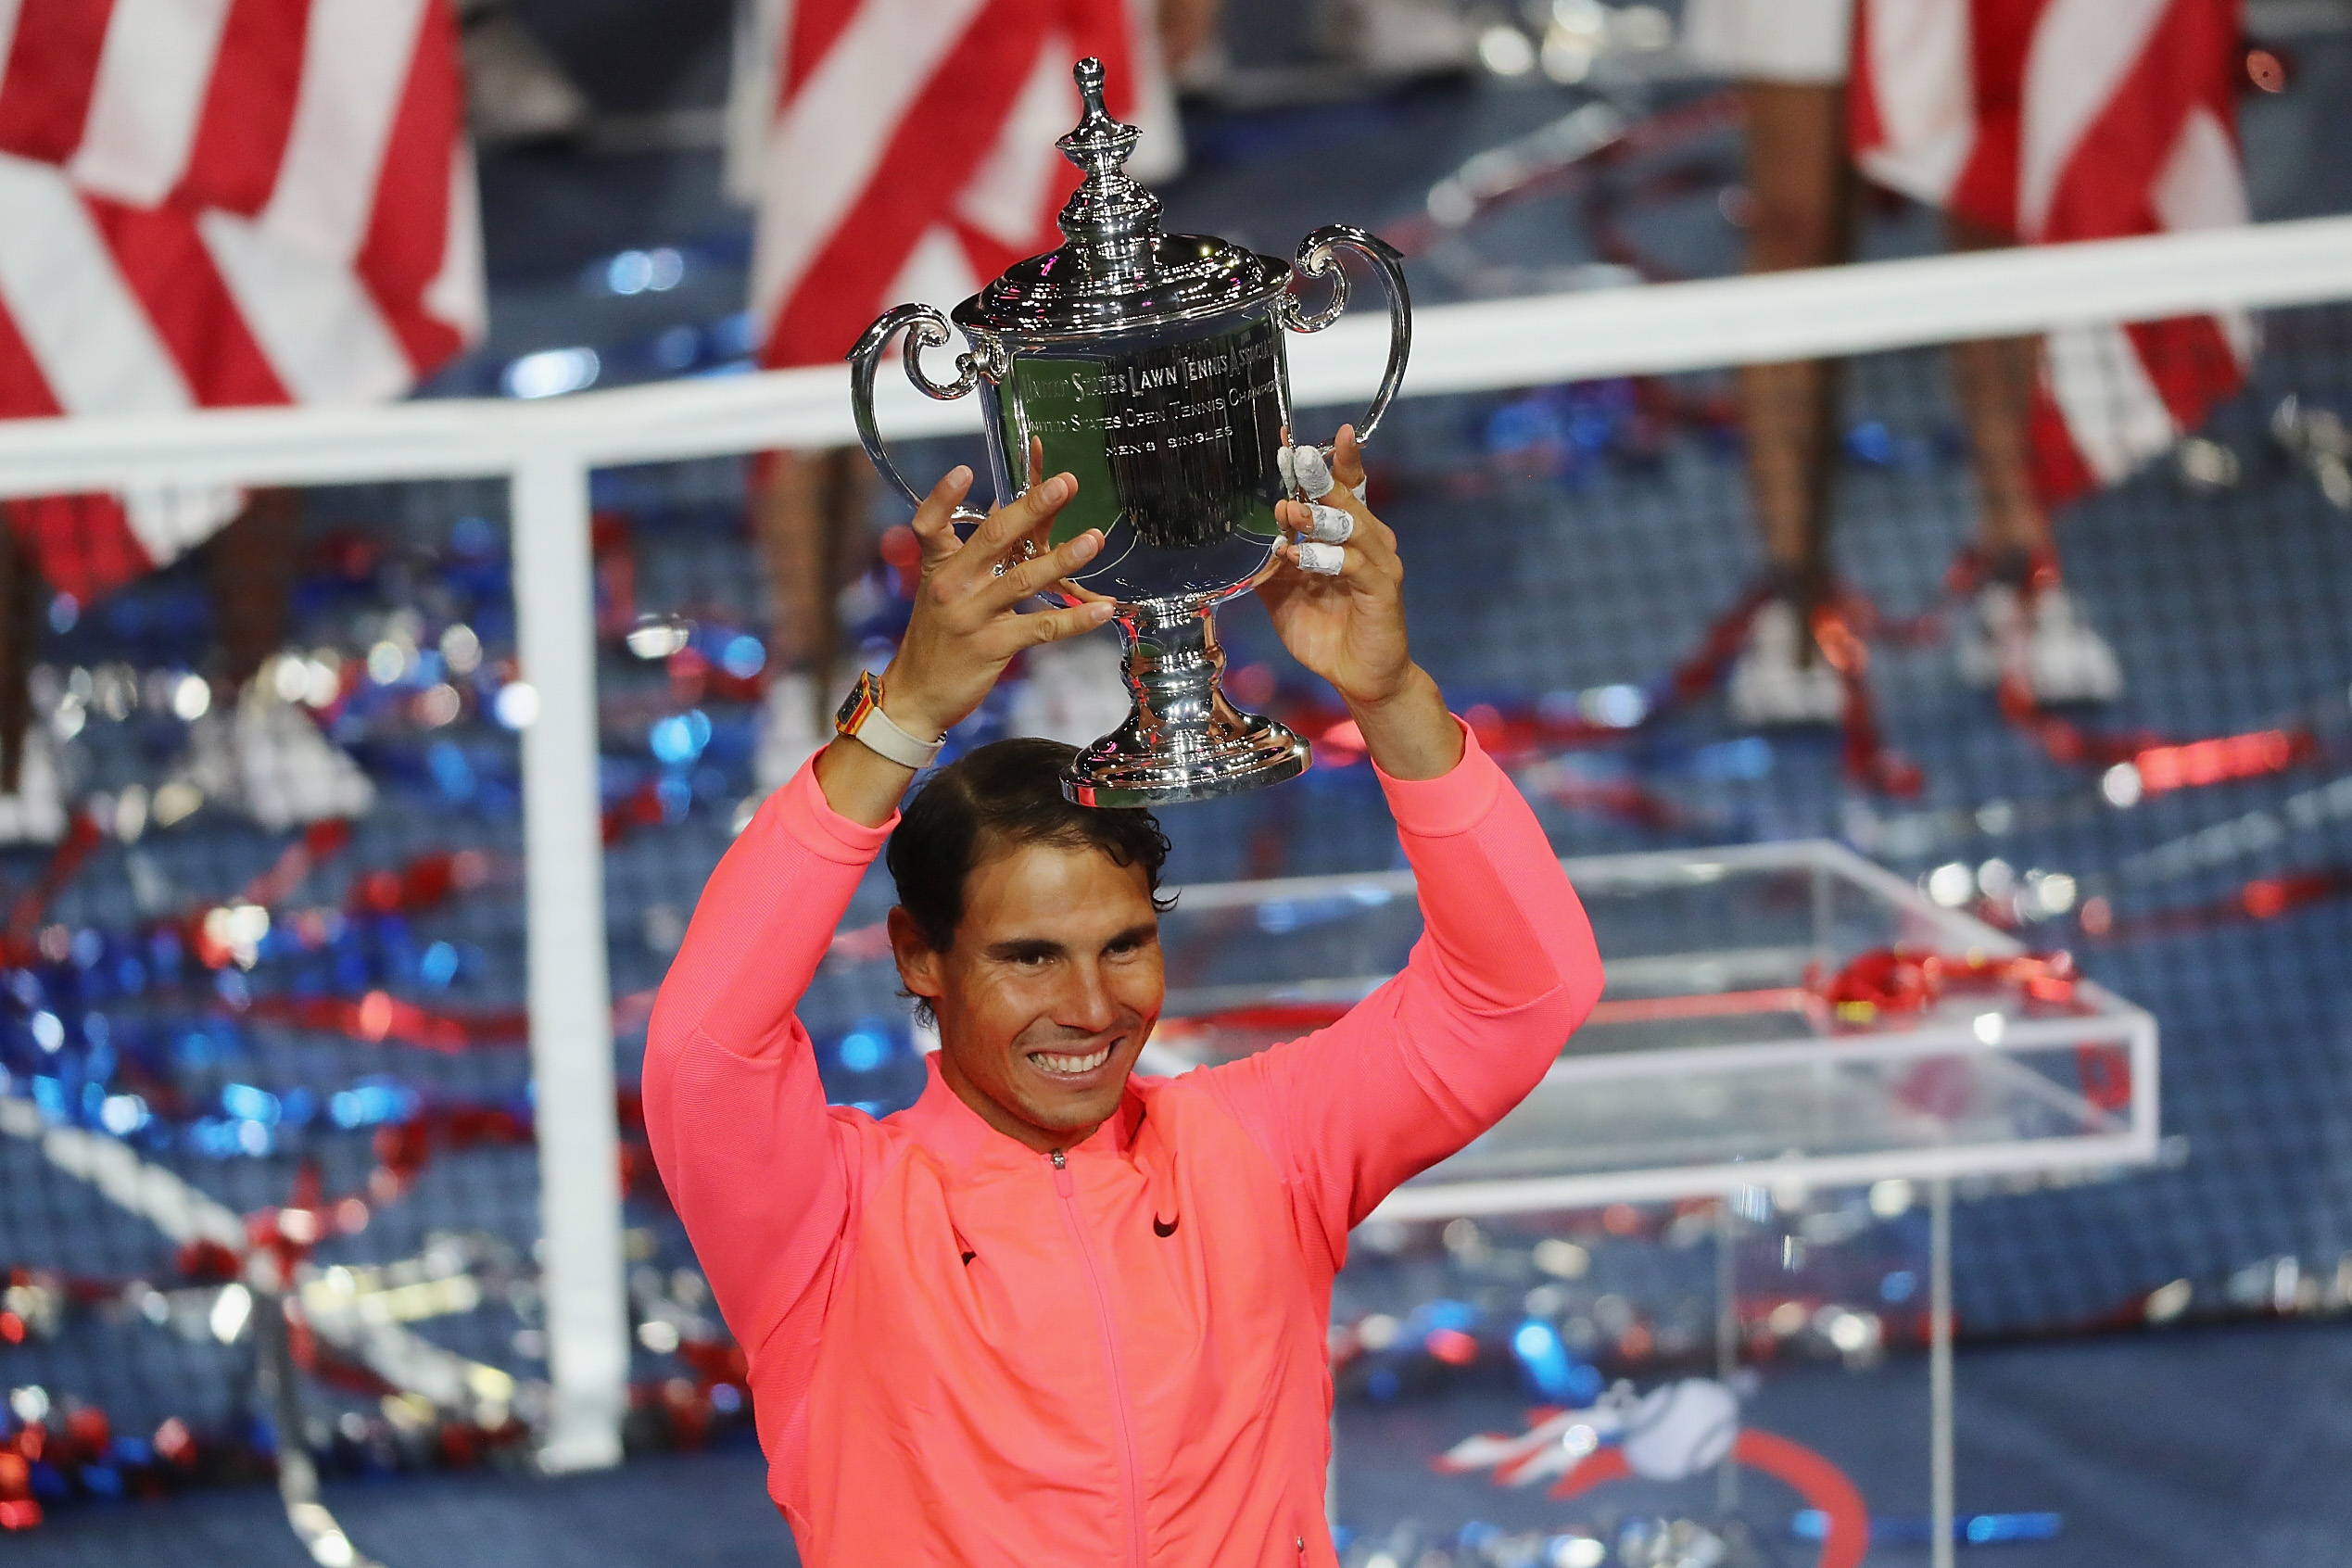 US Open: Nadal takes five-set thriller final for 19th Slam title